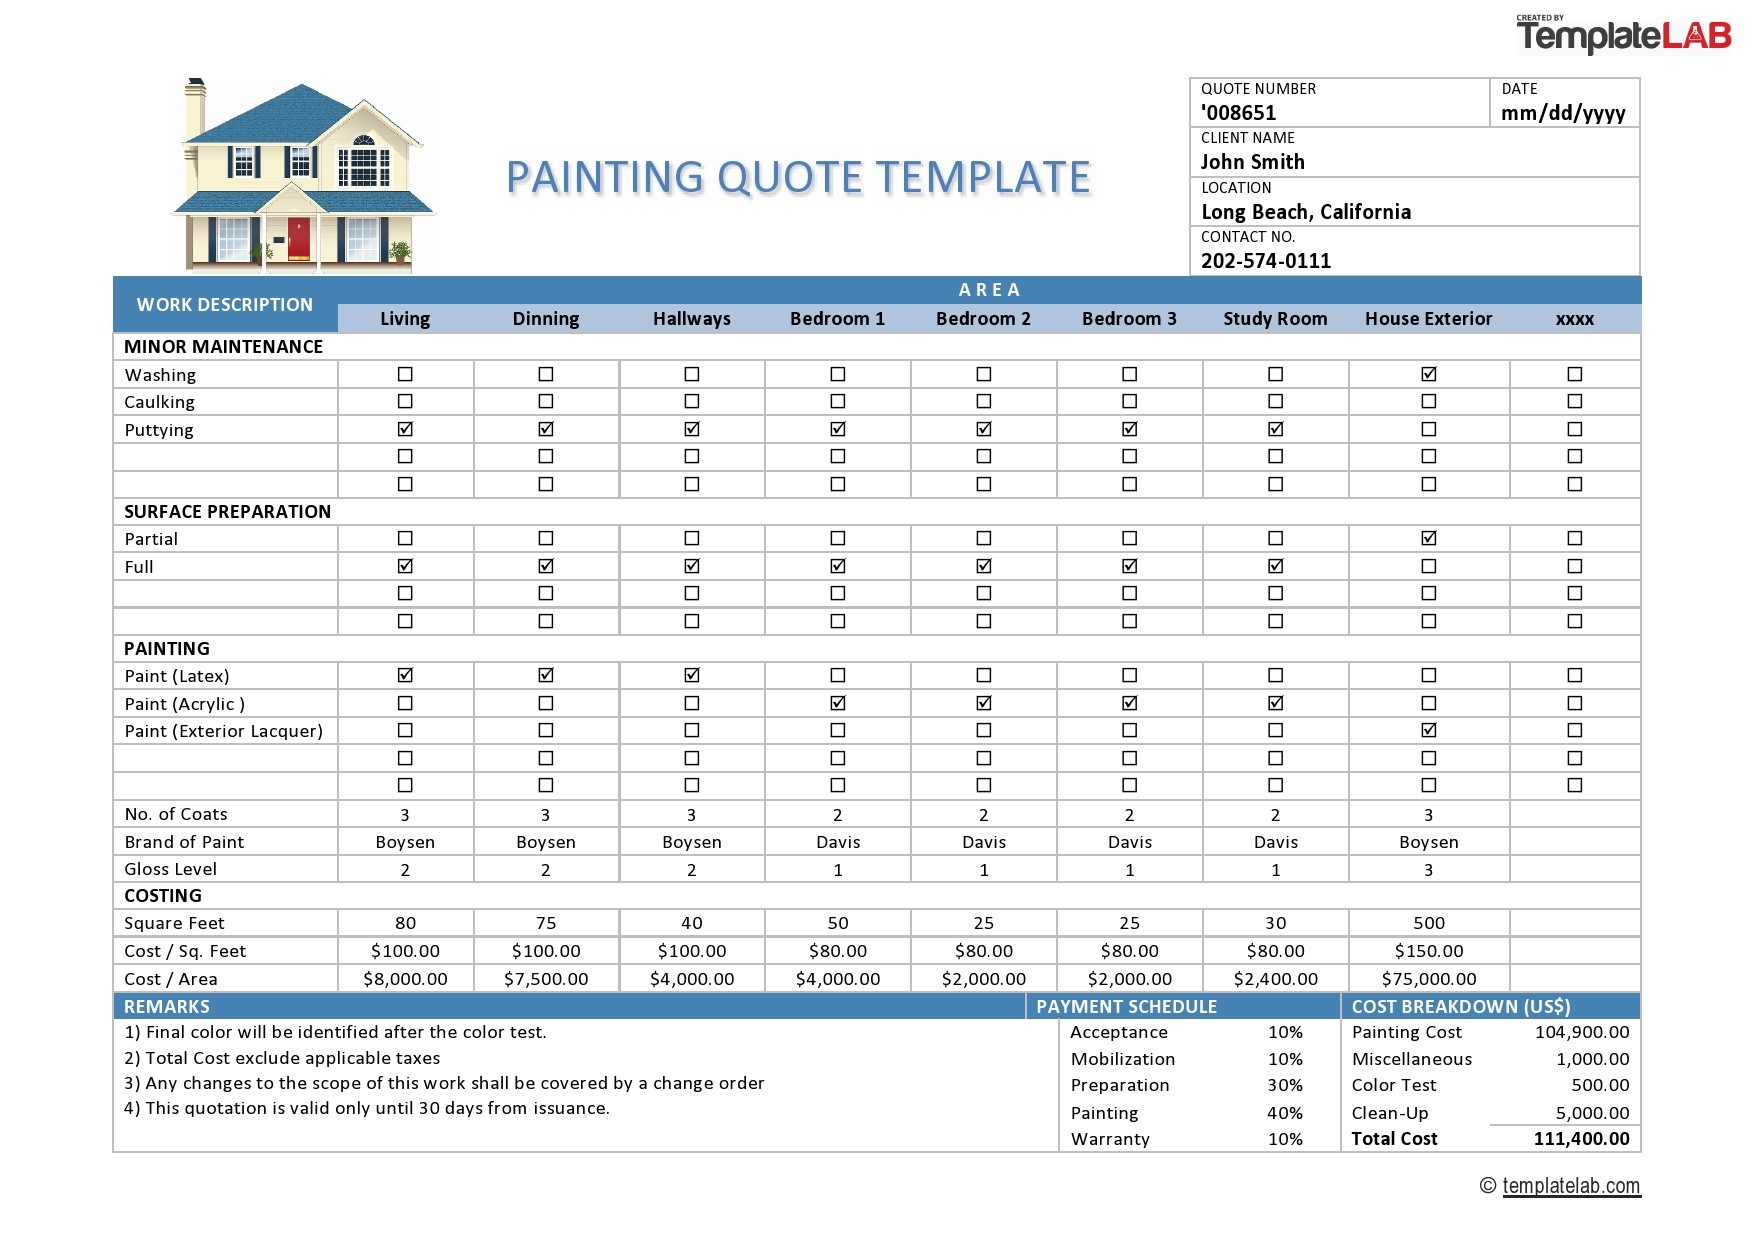 Free Painting Quote Template - TemplateLab